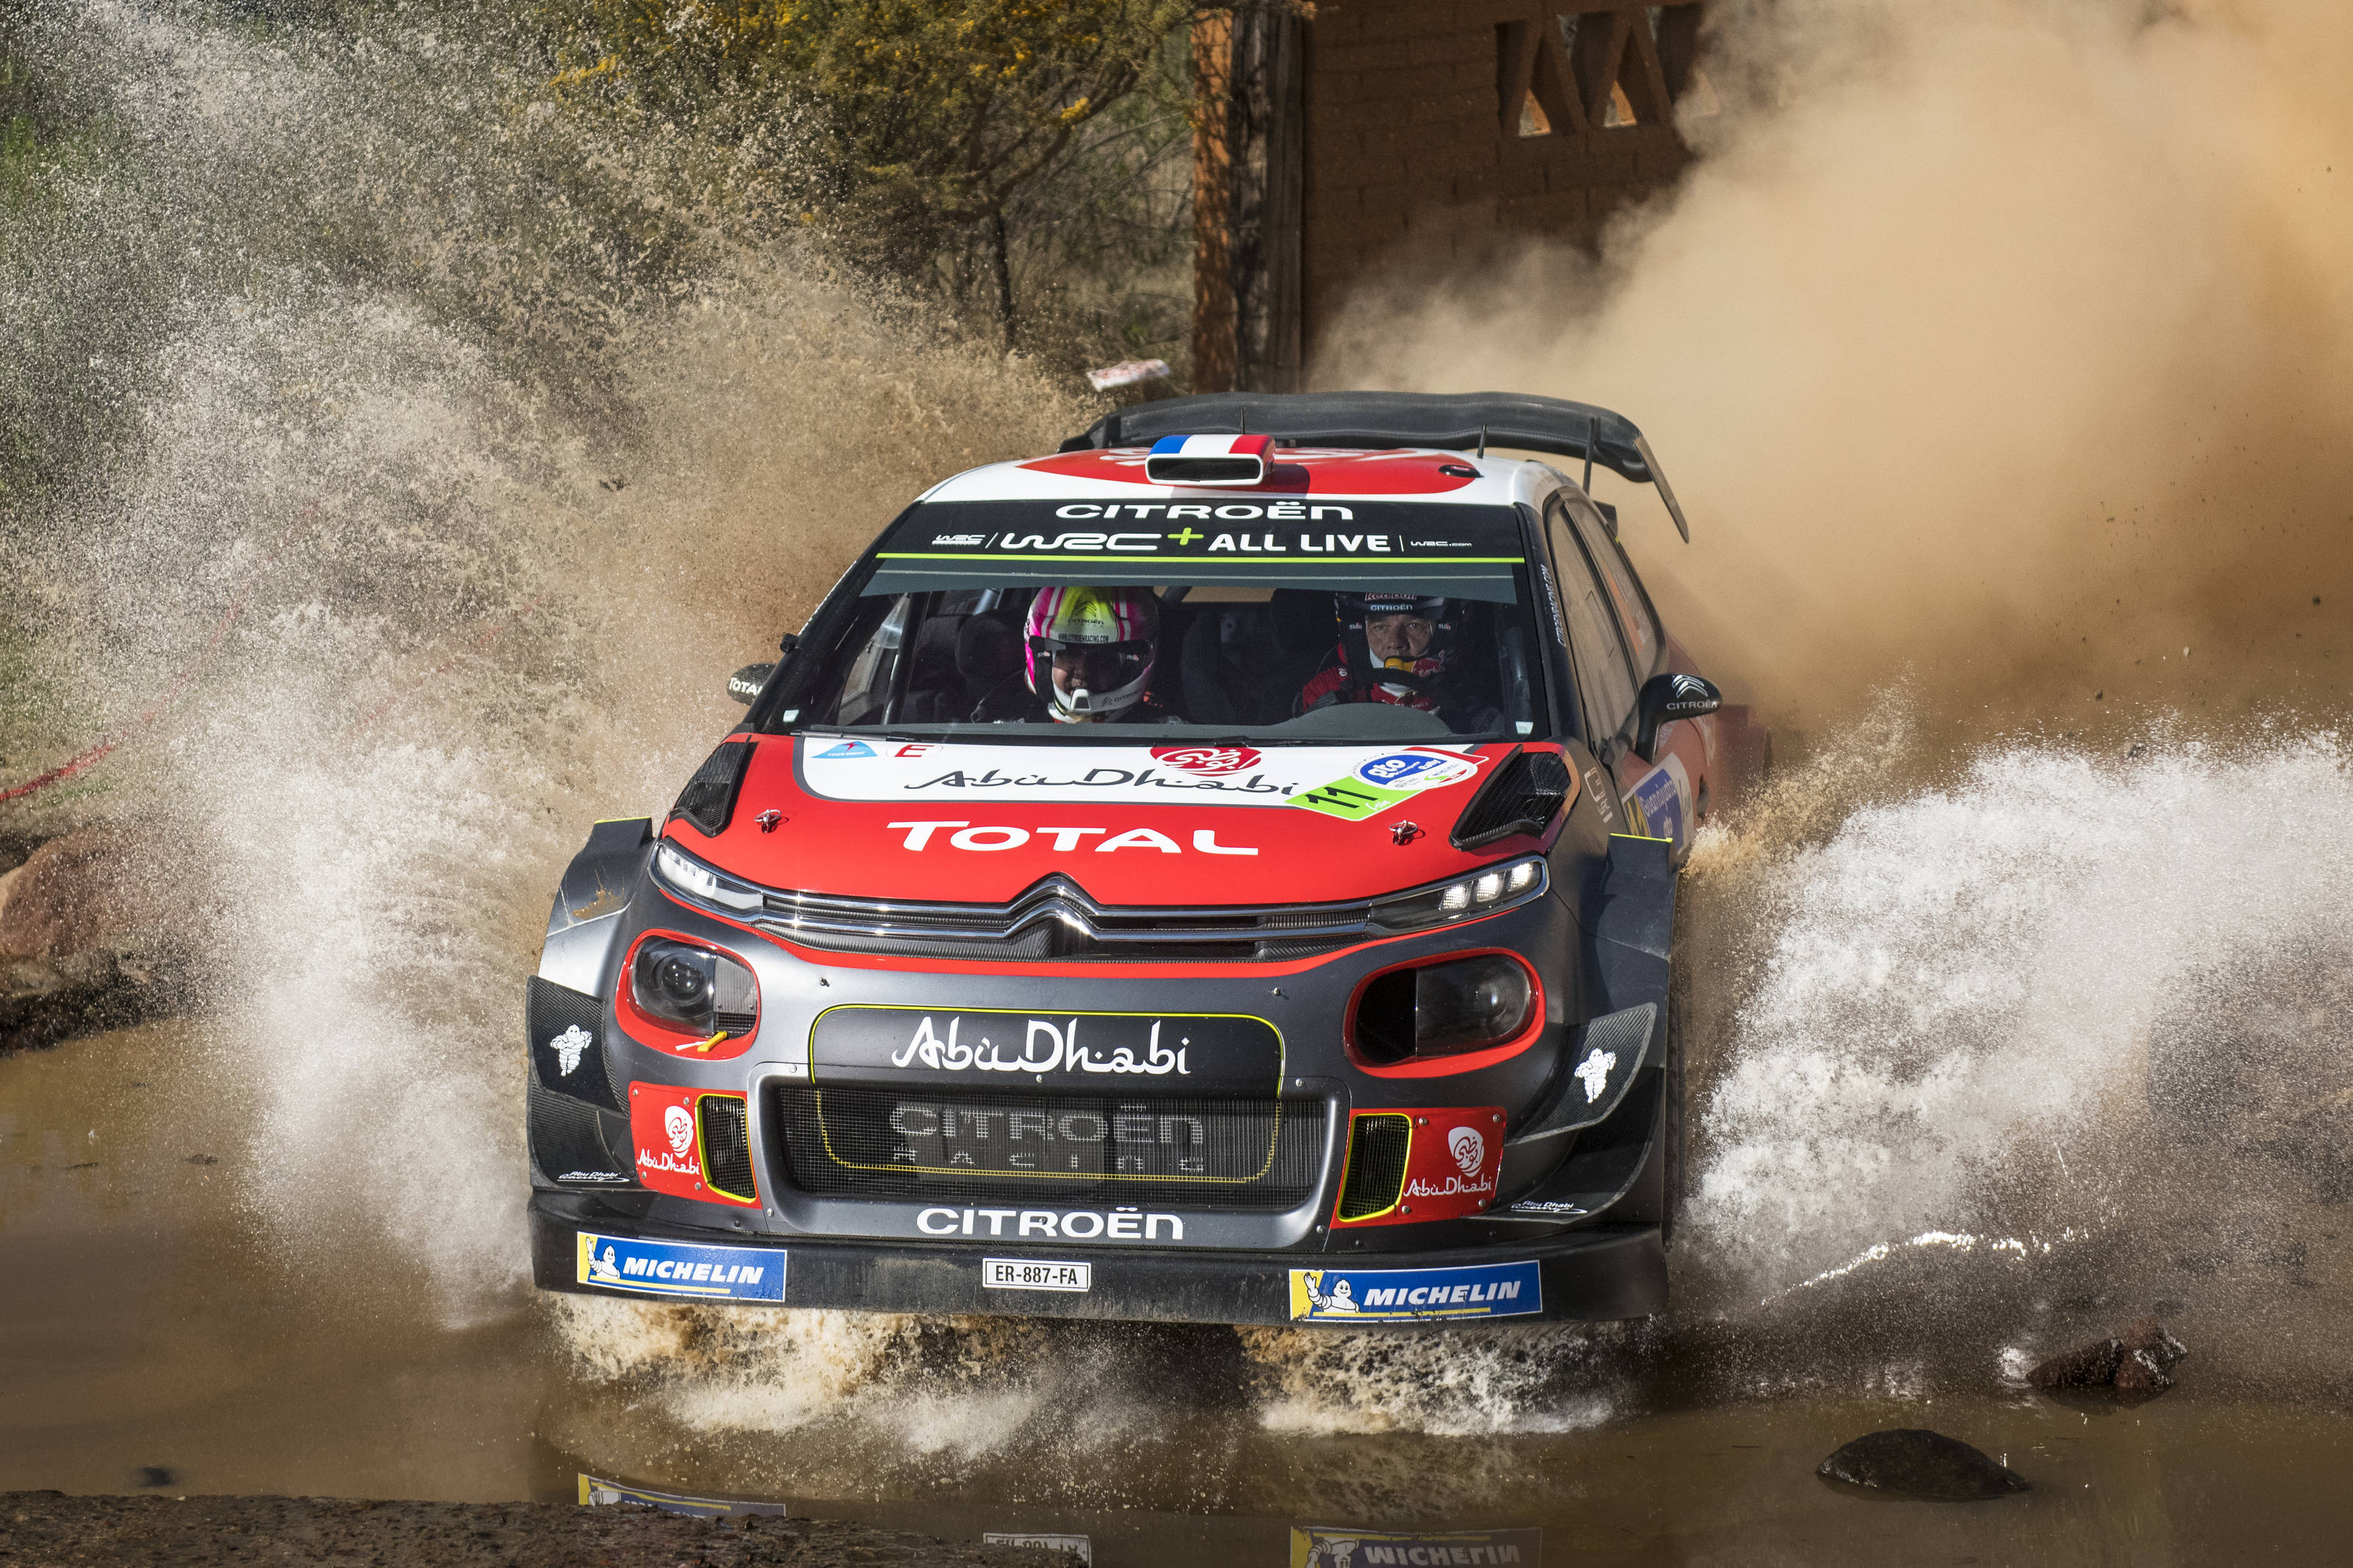 fia world rally championship rally mexico sensational comeback for loeb asc action sports. Black Bedroom Furniture Sets. Home Design Ideas